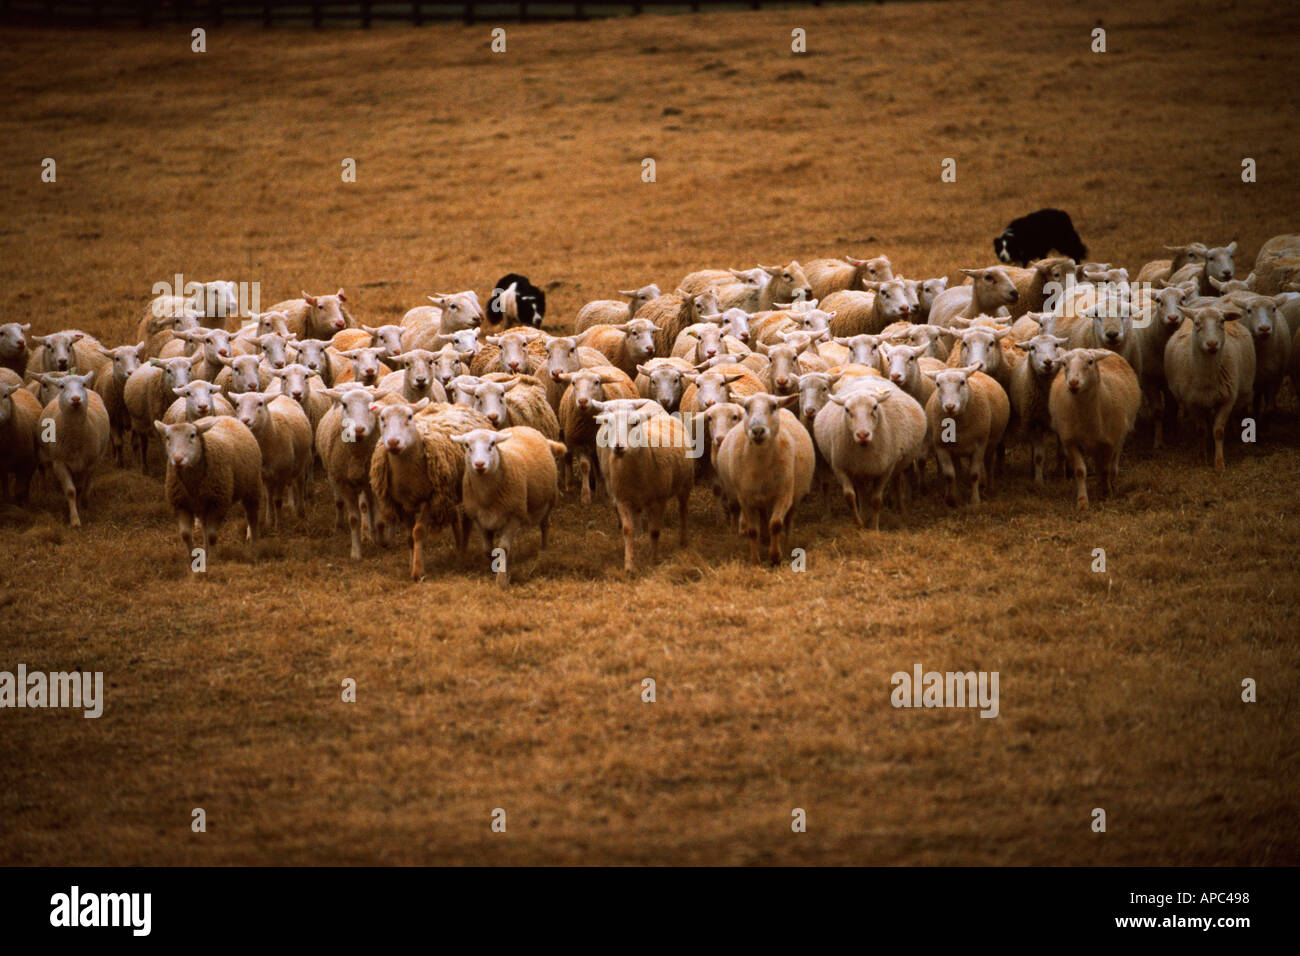 Sheep and Herding Dogs Stock Photo